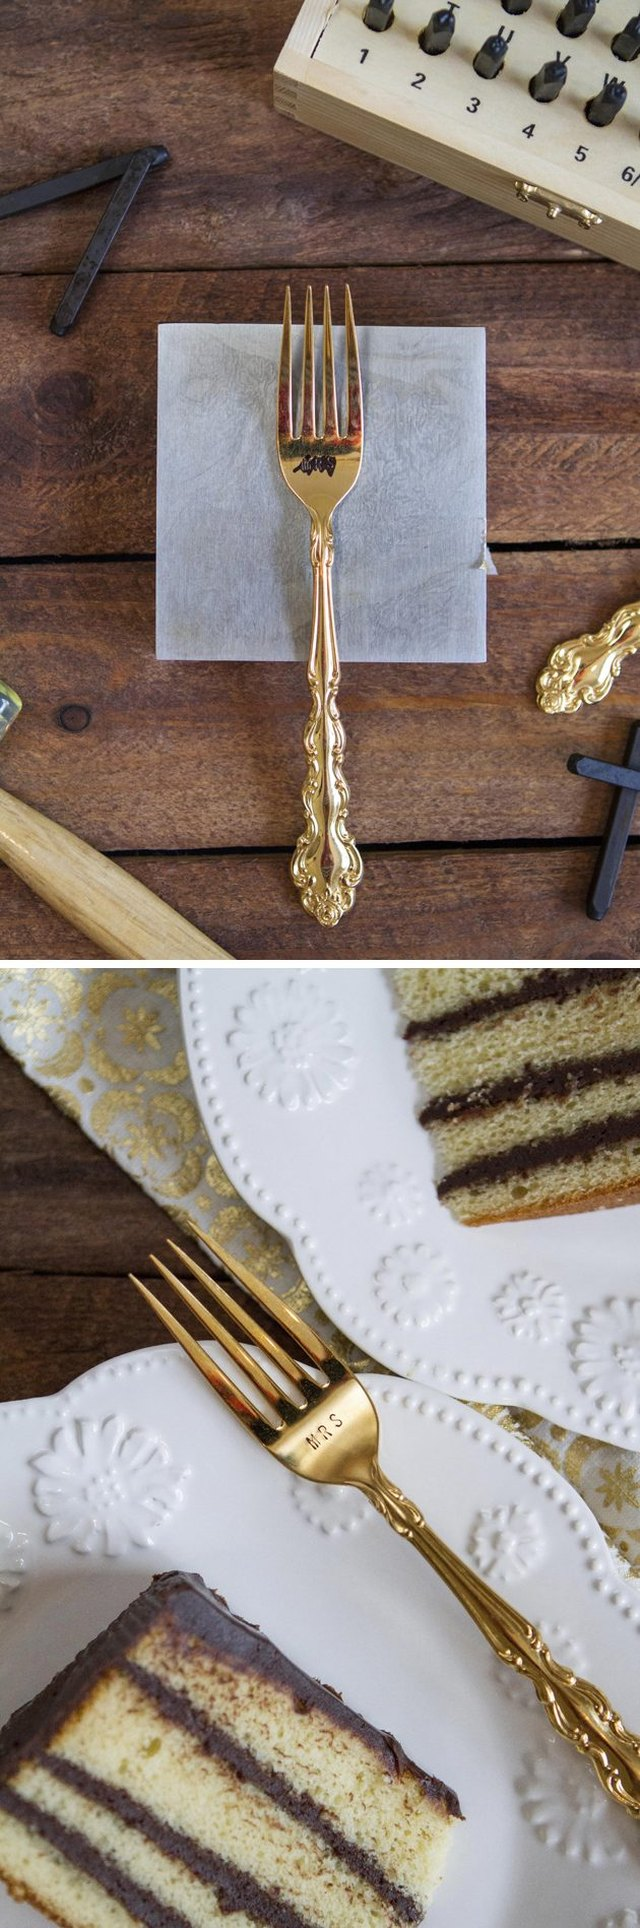 Cake feels so much fancier when eaten from a custom fork.